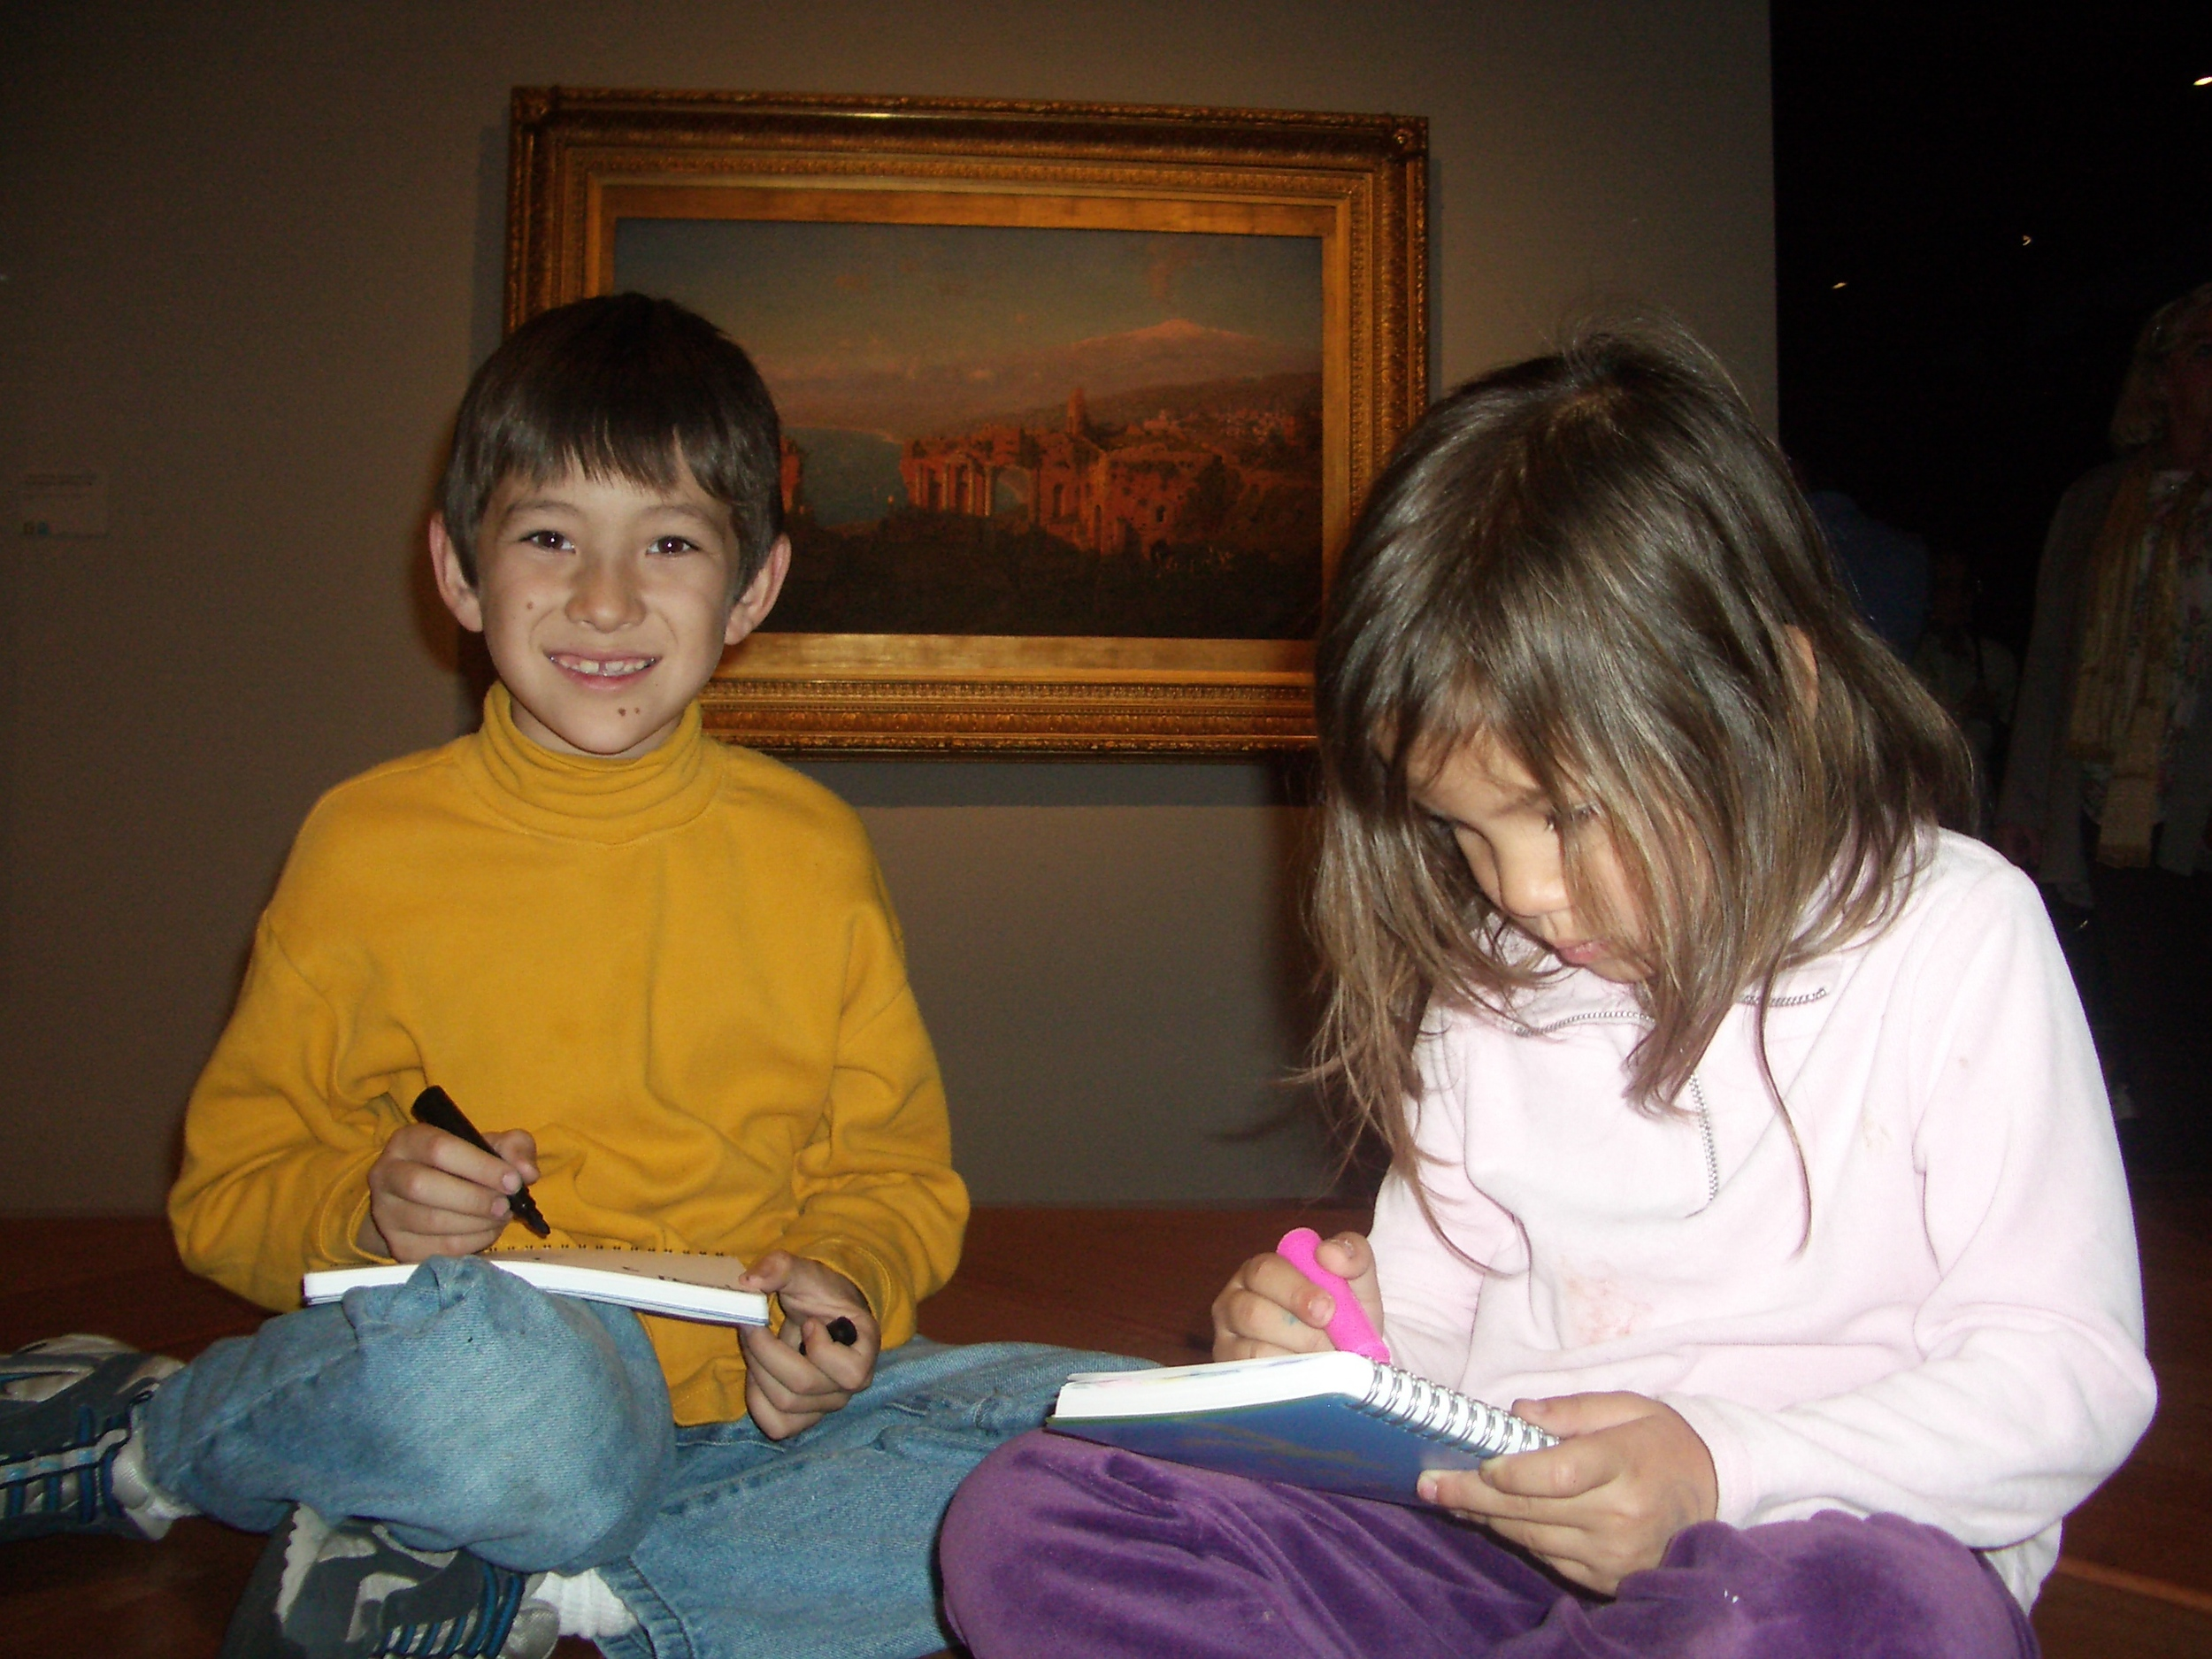 viewing the masters can inspire kids to want  to create their own works of art. On a trip to the museum, My kids carried sketchpads and markers with them and started drawing when they felt inspired to do so. i watched them from afar, but let them drive the timing of what they wanted to do and see.